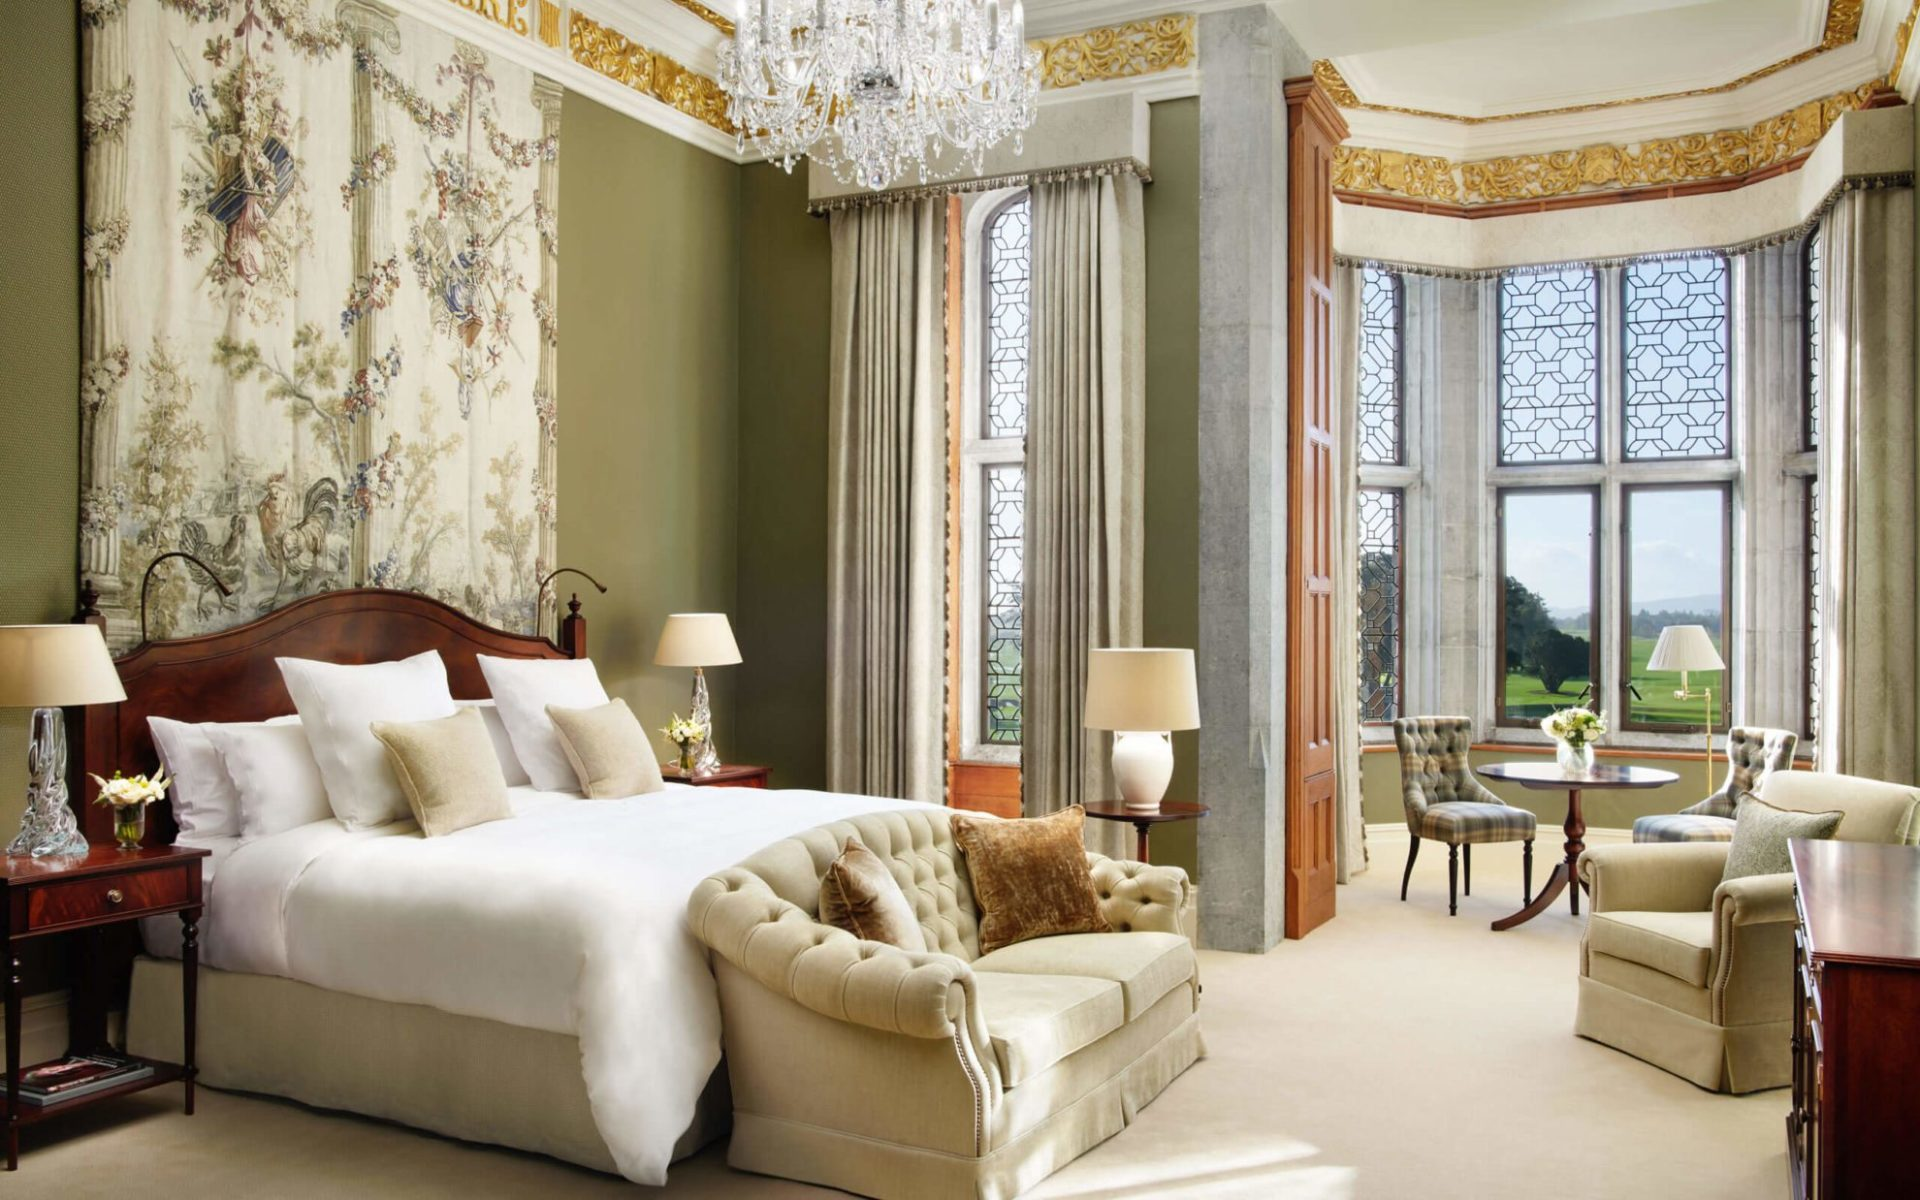 The Adare Manor Hotel Dunraven Stateroom